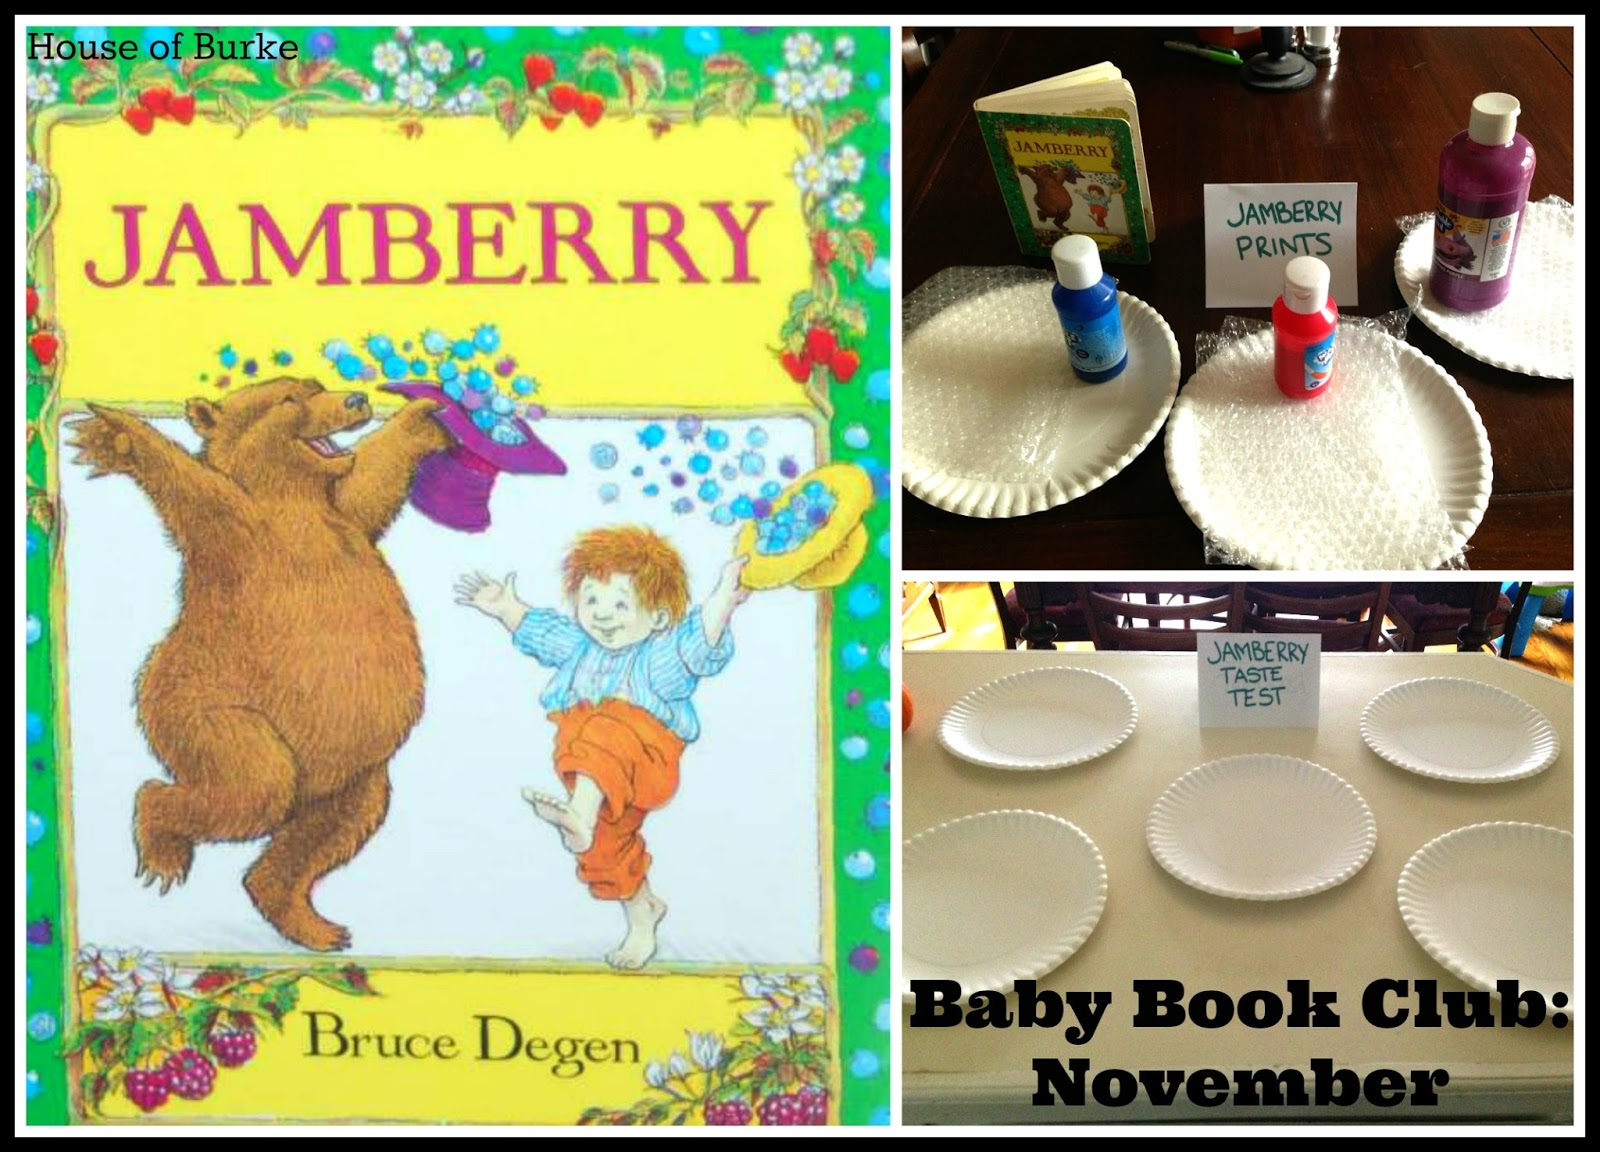 House Of Burke Baby Book Club November Jamberry